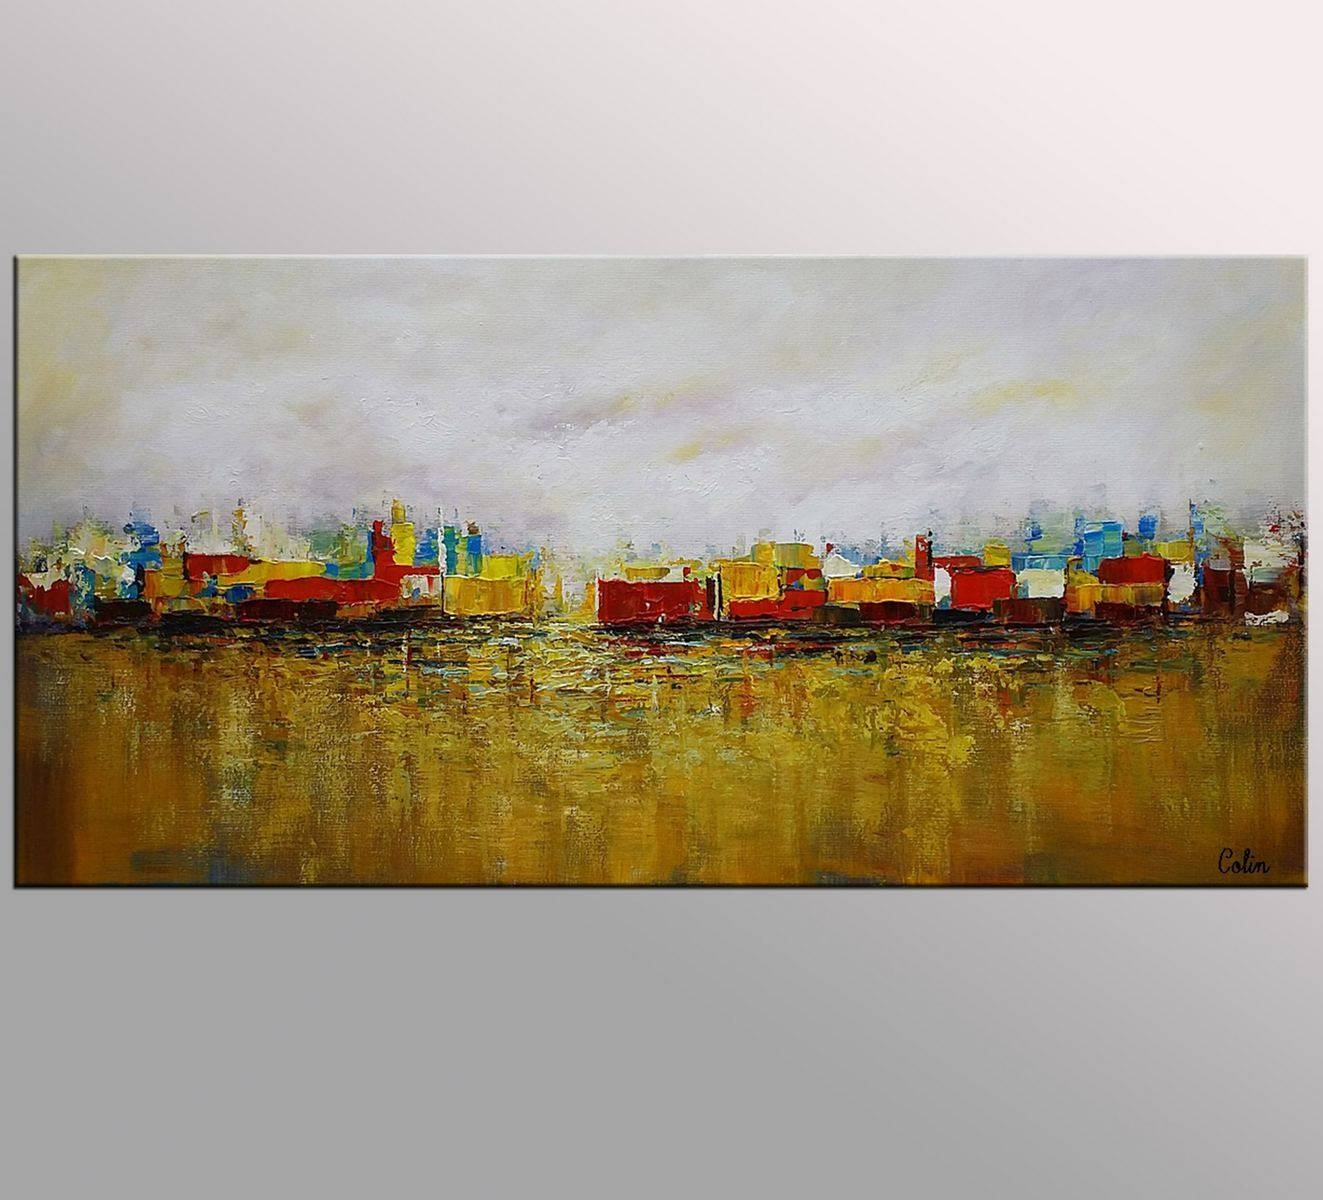 Cityscape Art, Canvas Wall Art, Landscape Painting, Contemporary For Most Recently Released Cityscape Canvas Wall Art (View 19 of 20)